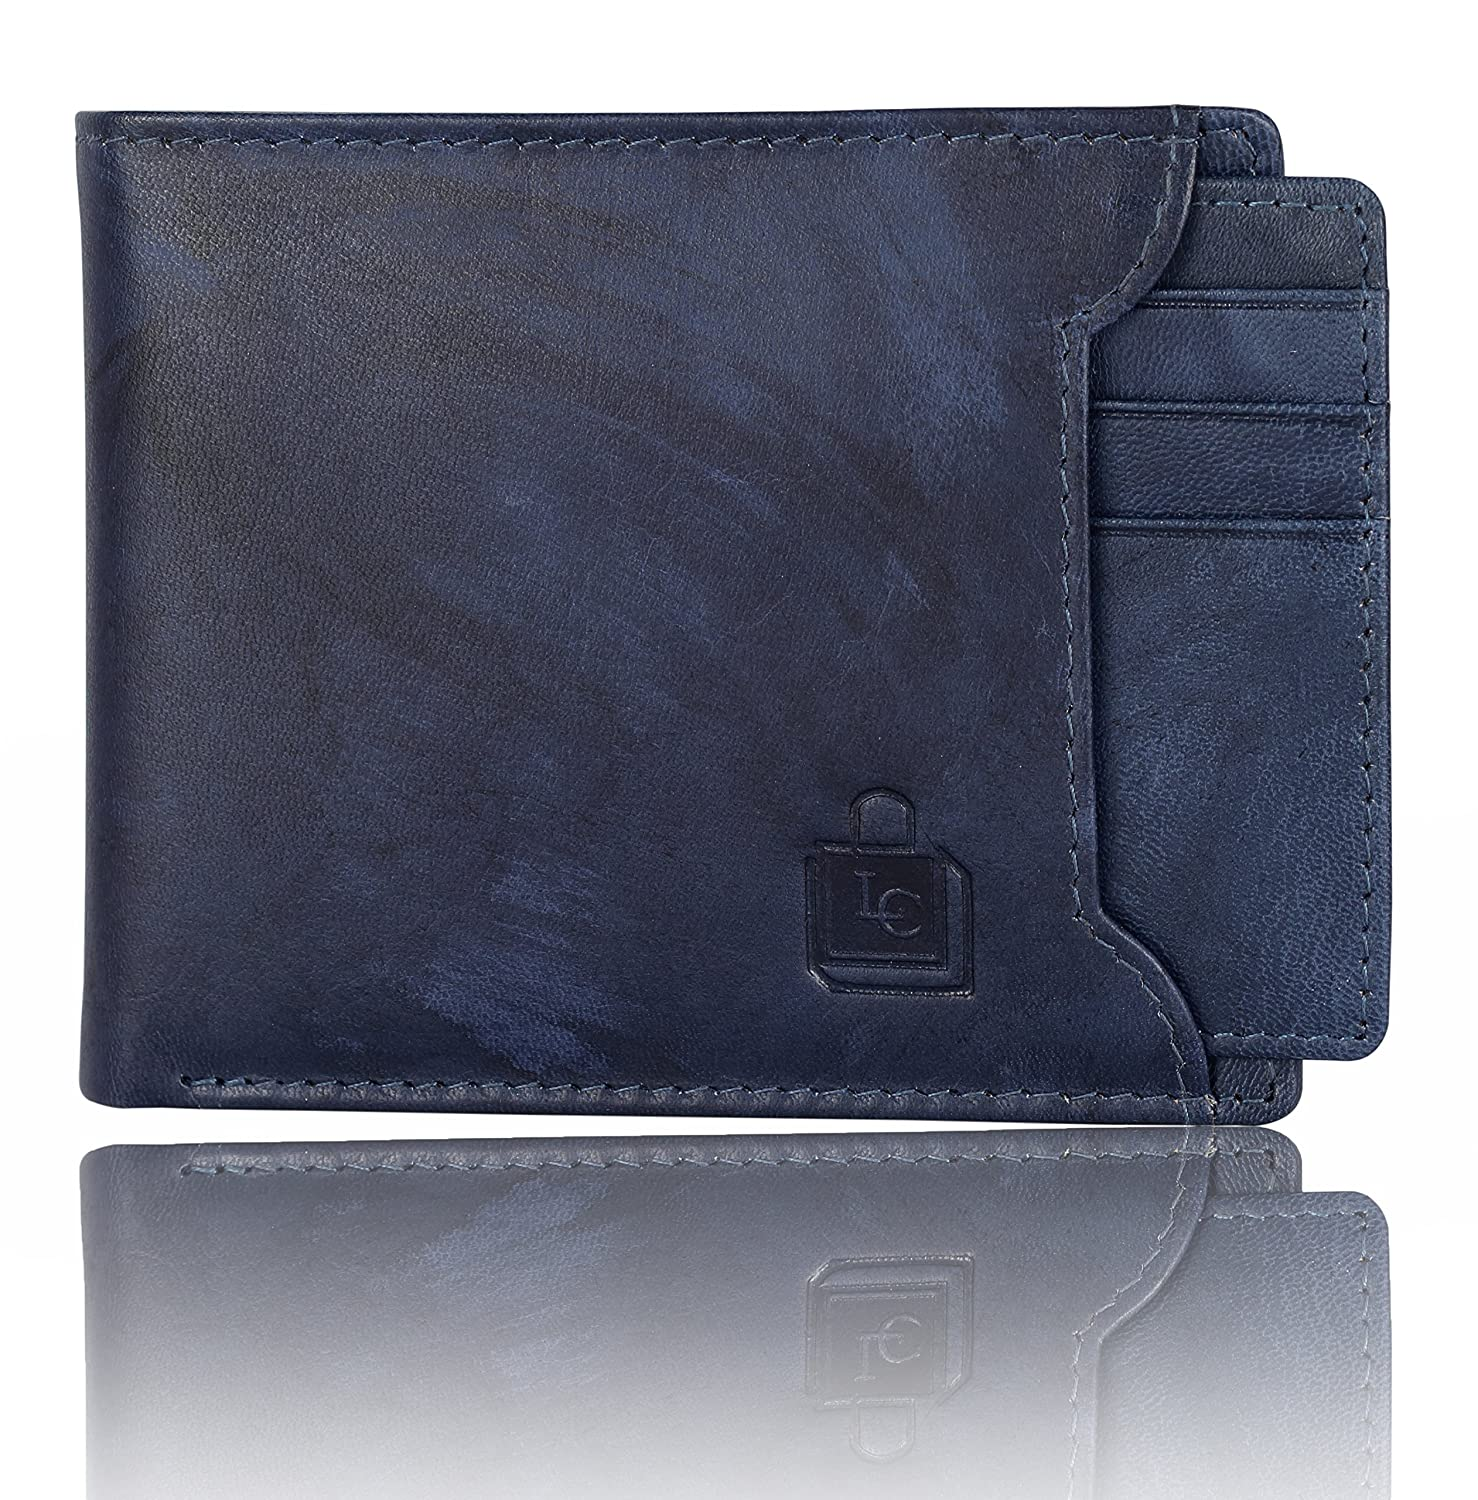 Le craf Men's Blue Genuine Leather RFID Blocking Wallet W4230829